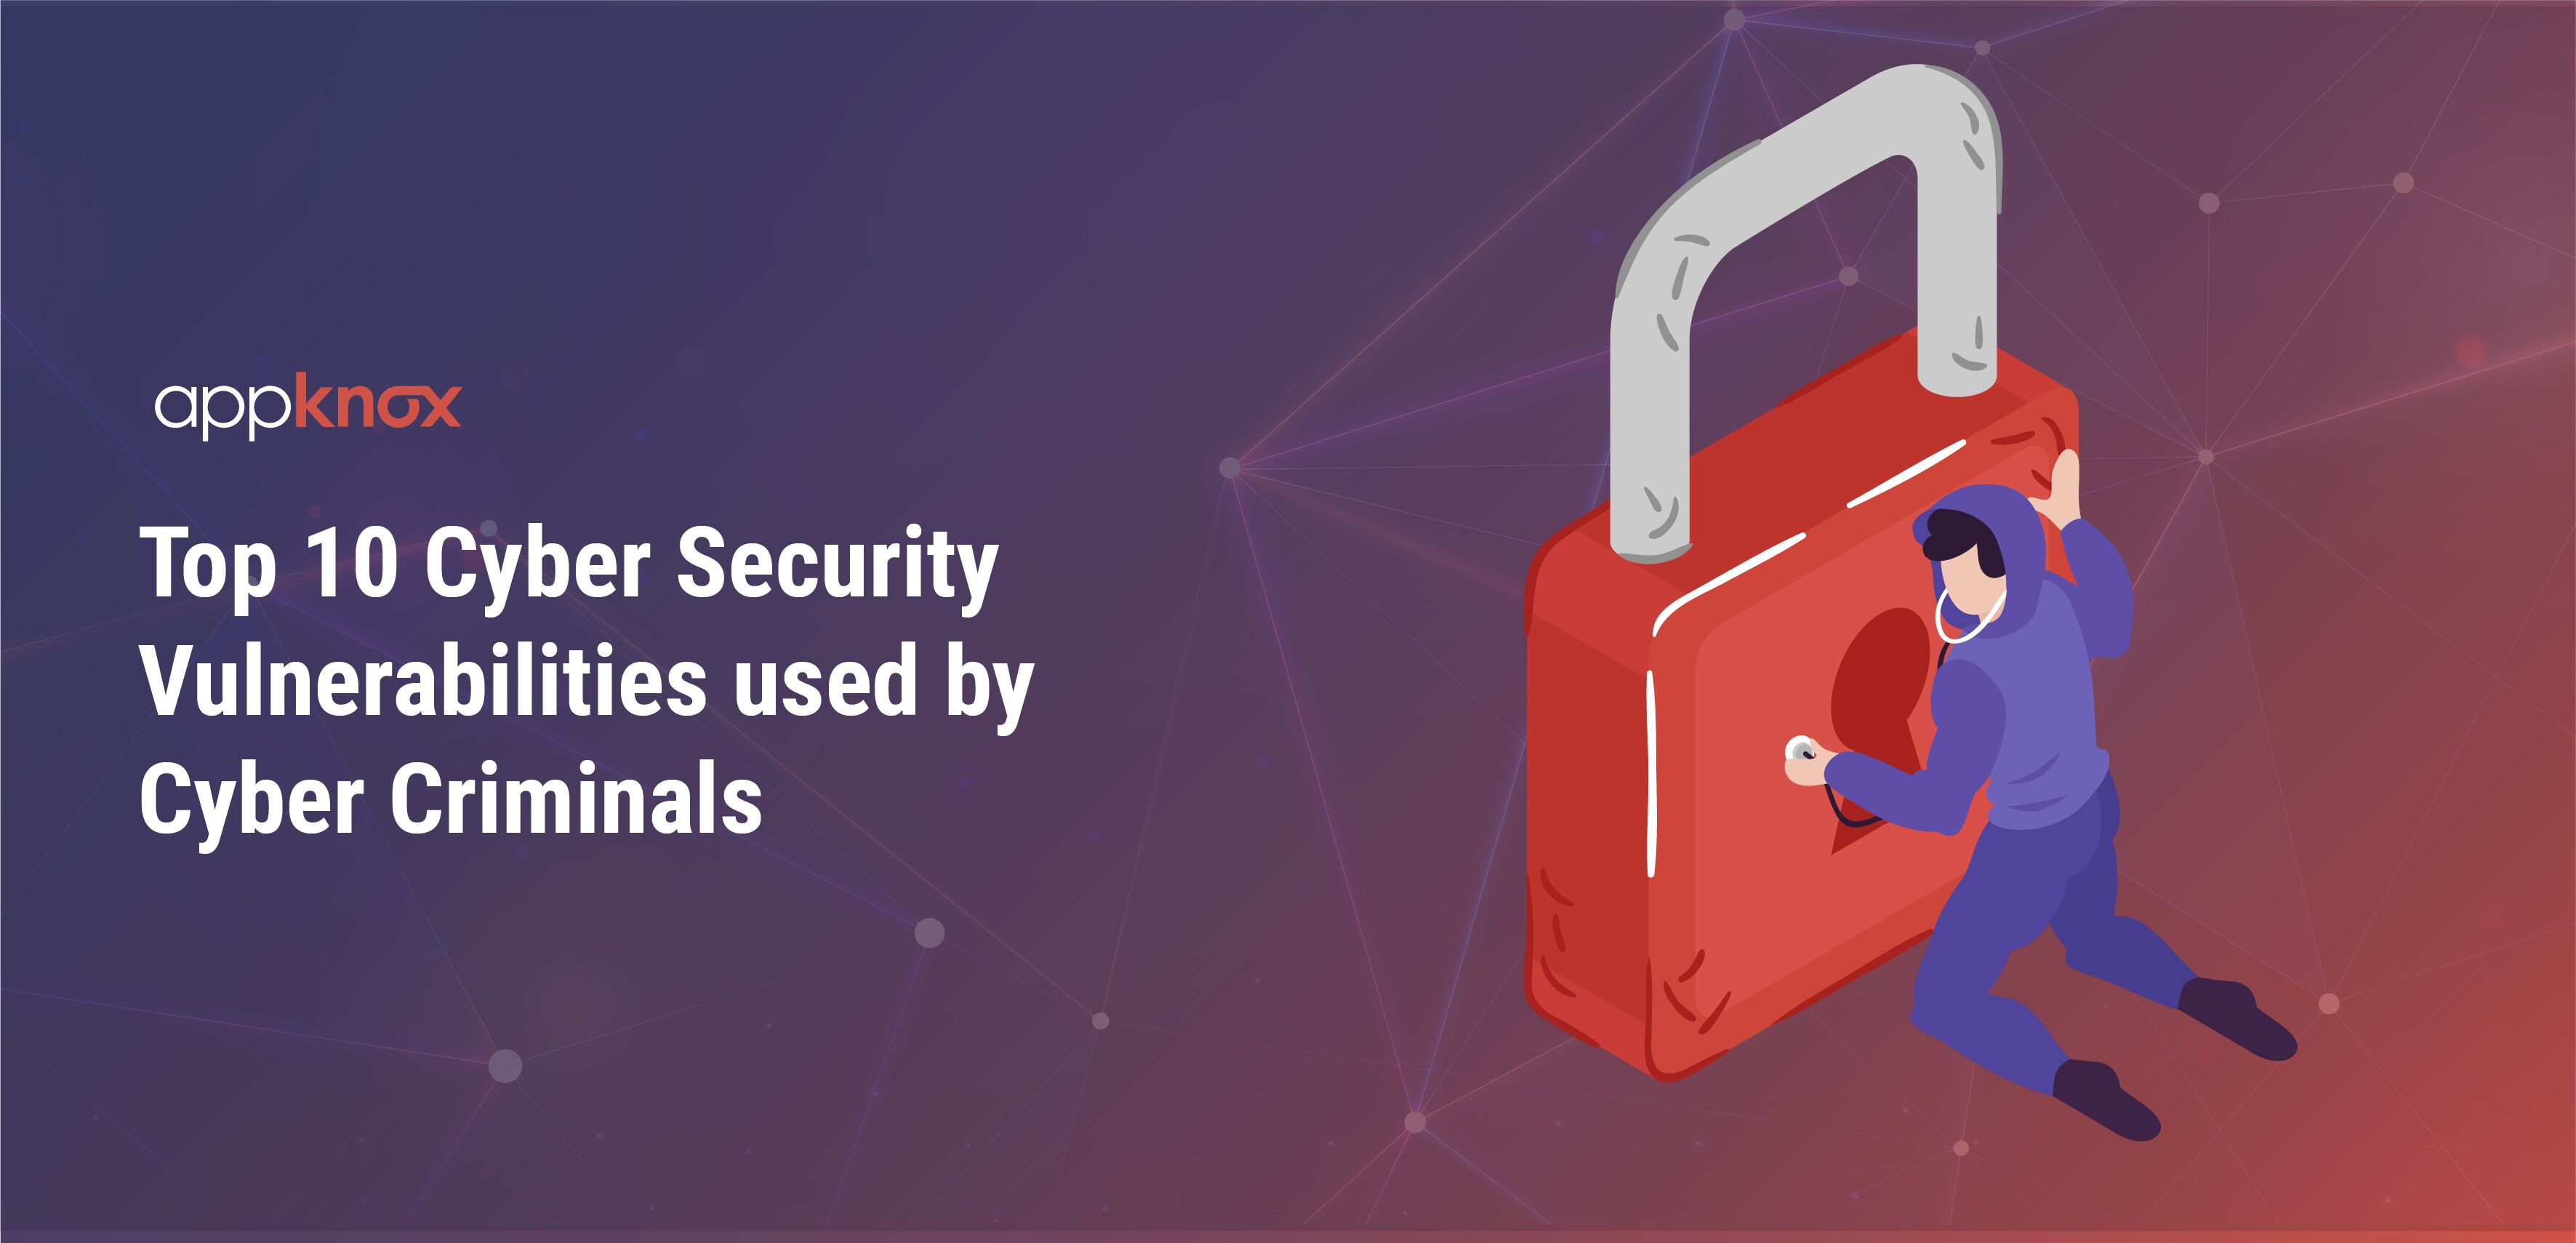 Top 10 Cyber Security Vulnerabilities used by cyber criminals